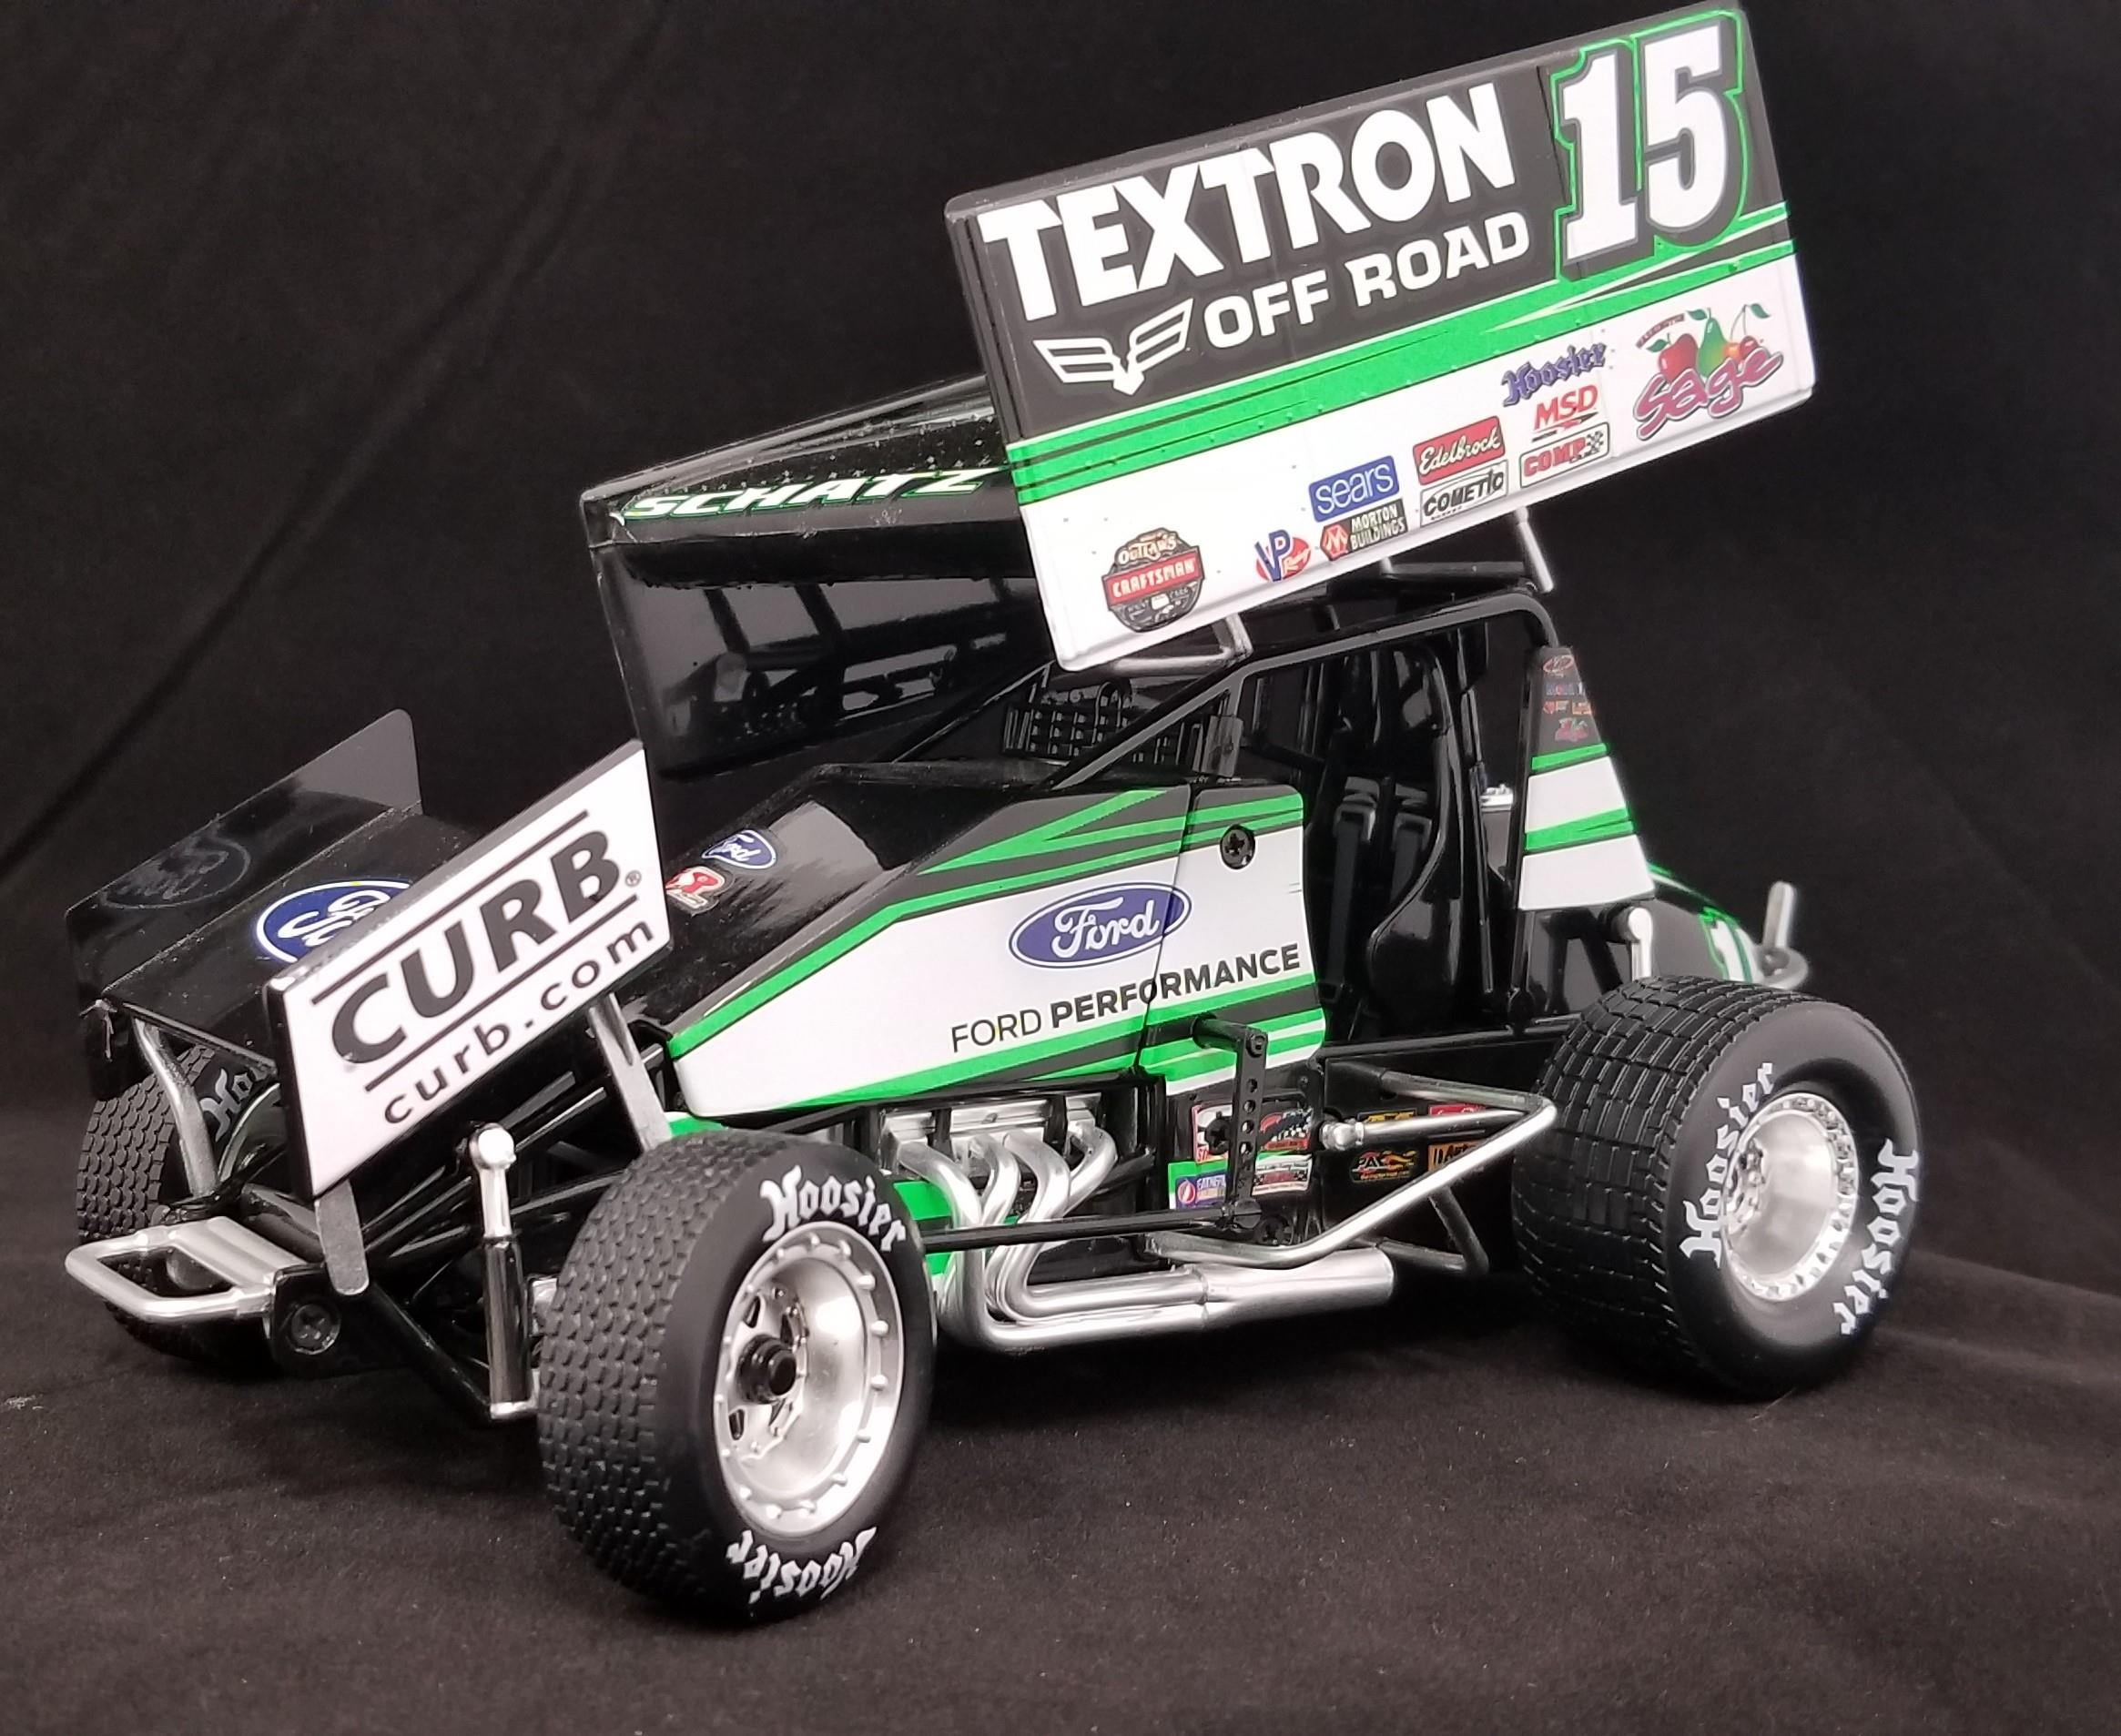 2018 Textron Off Road/Arctic Cat/Ford Performance 1:18th Scale Car